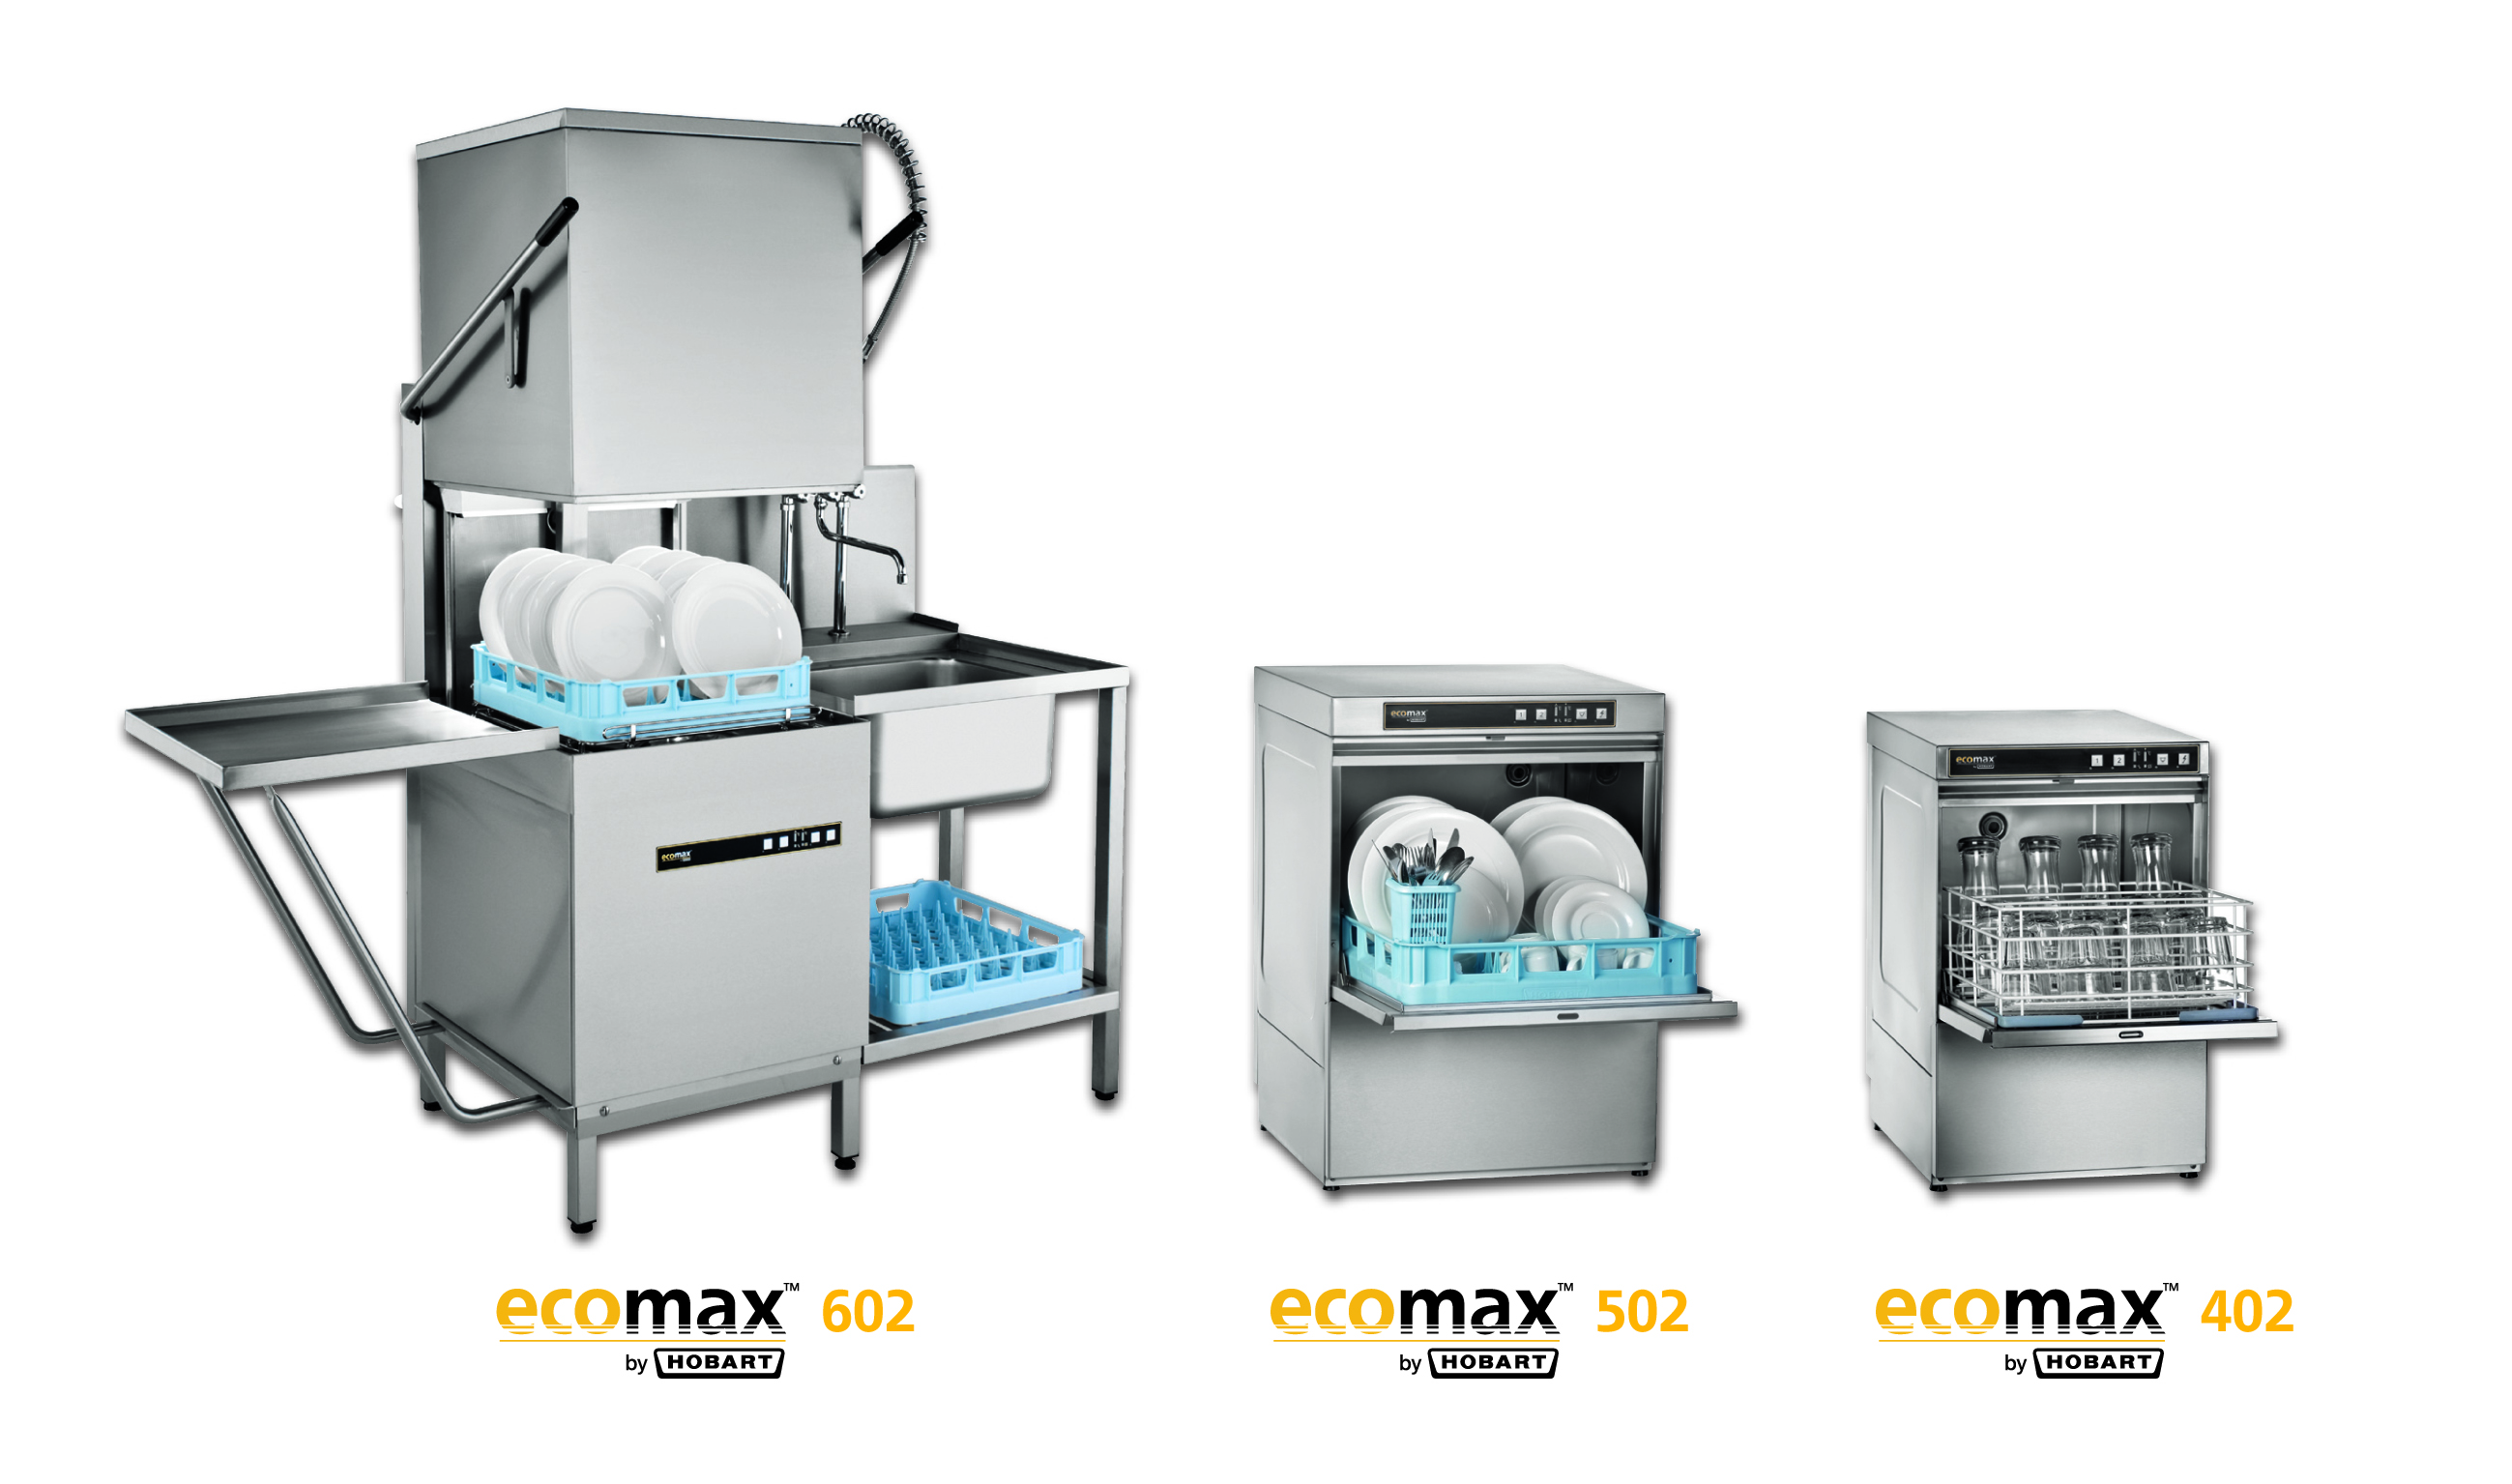 Ecomax By Hobart Thain Commercial